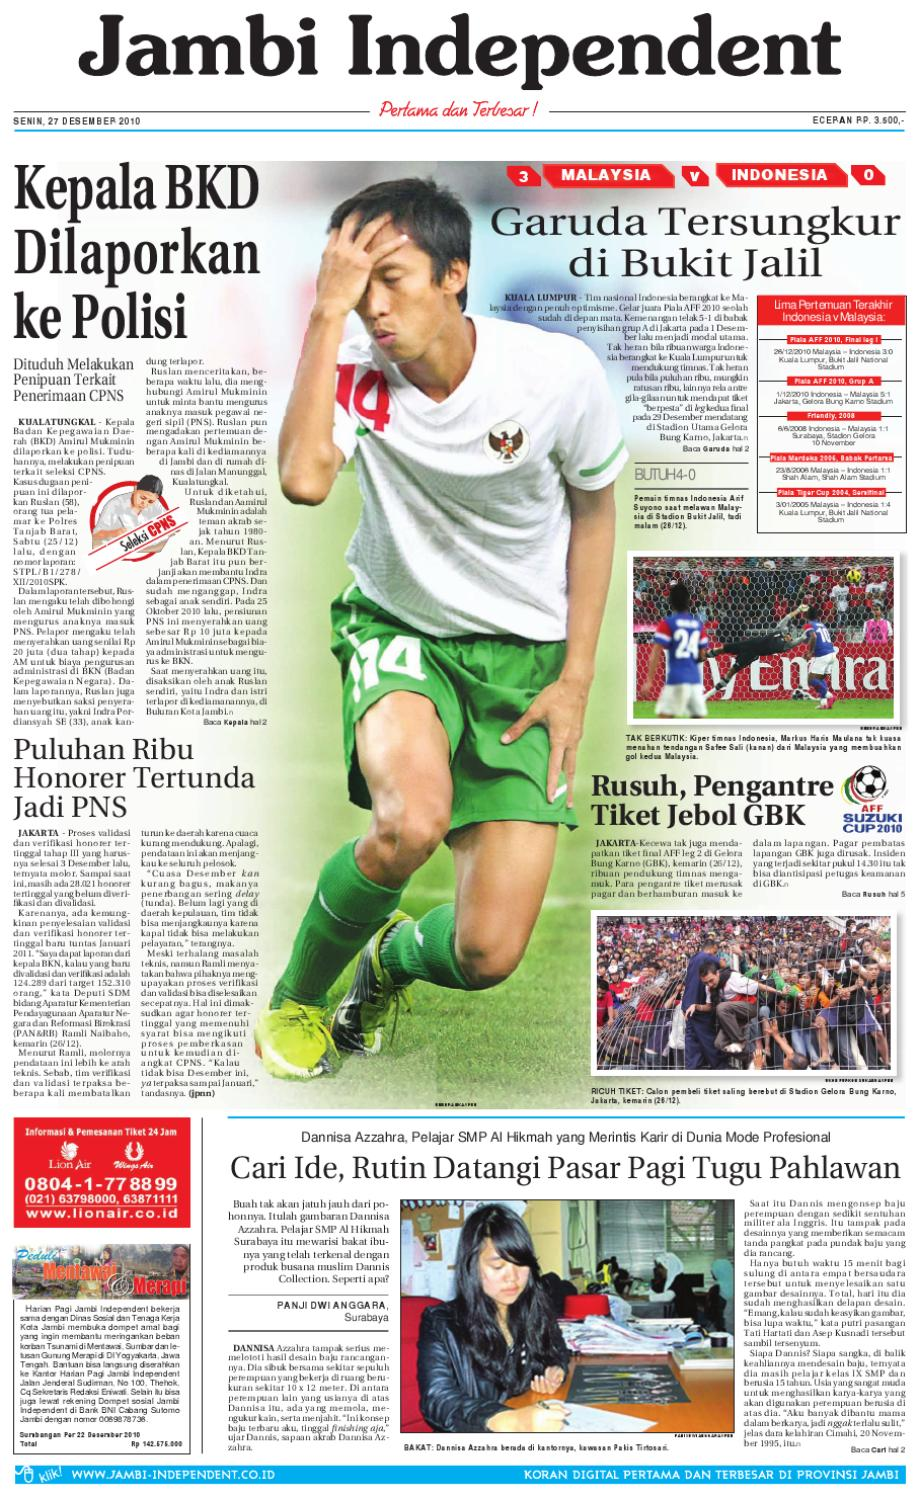 Jambi Independent 27 Desember 2010 By Jambi Independent Issuu